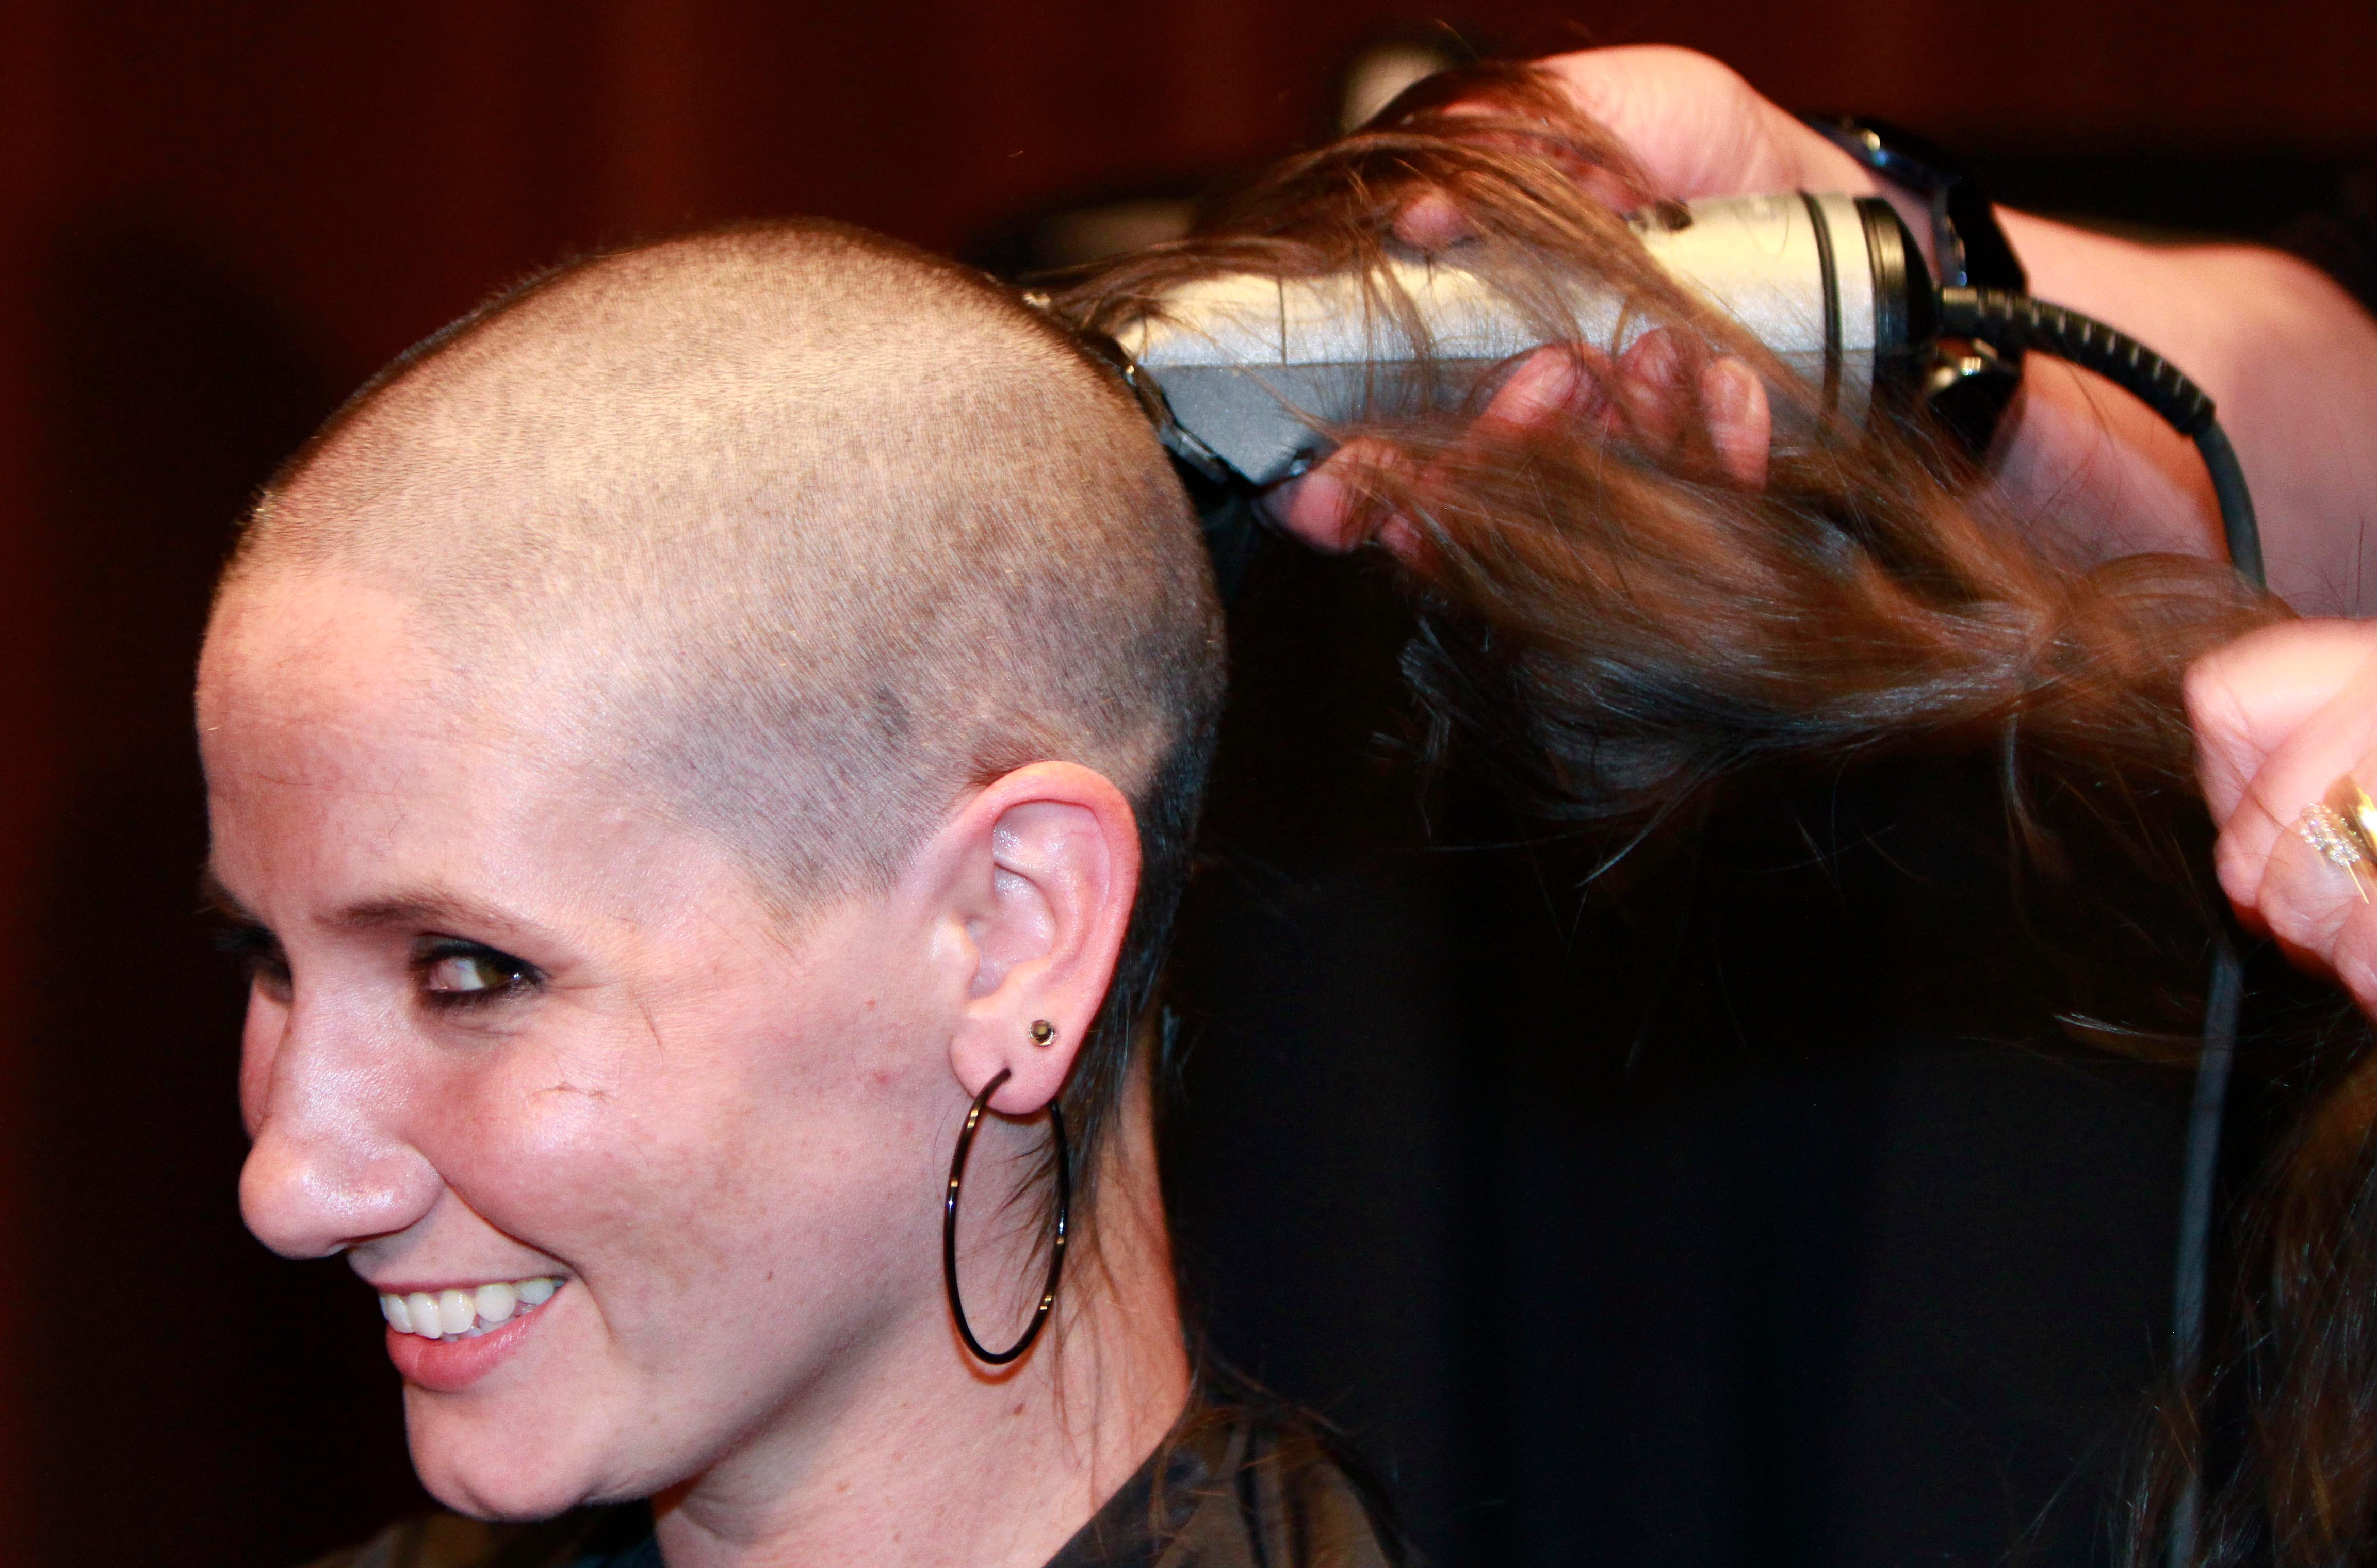 Gets Her Head Shaved